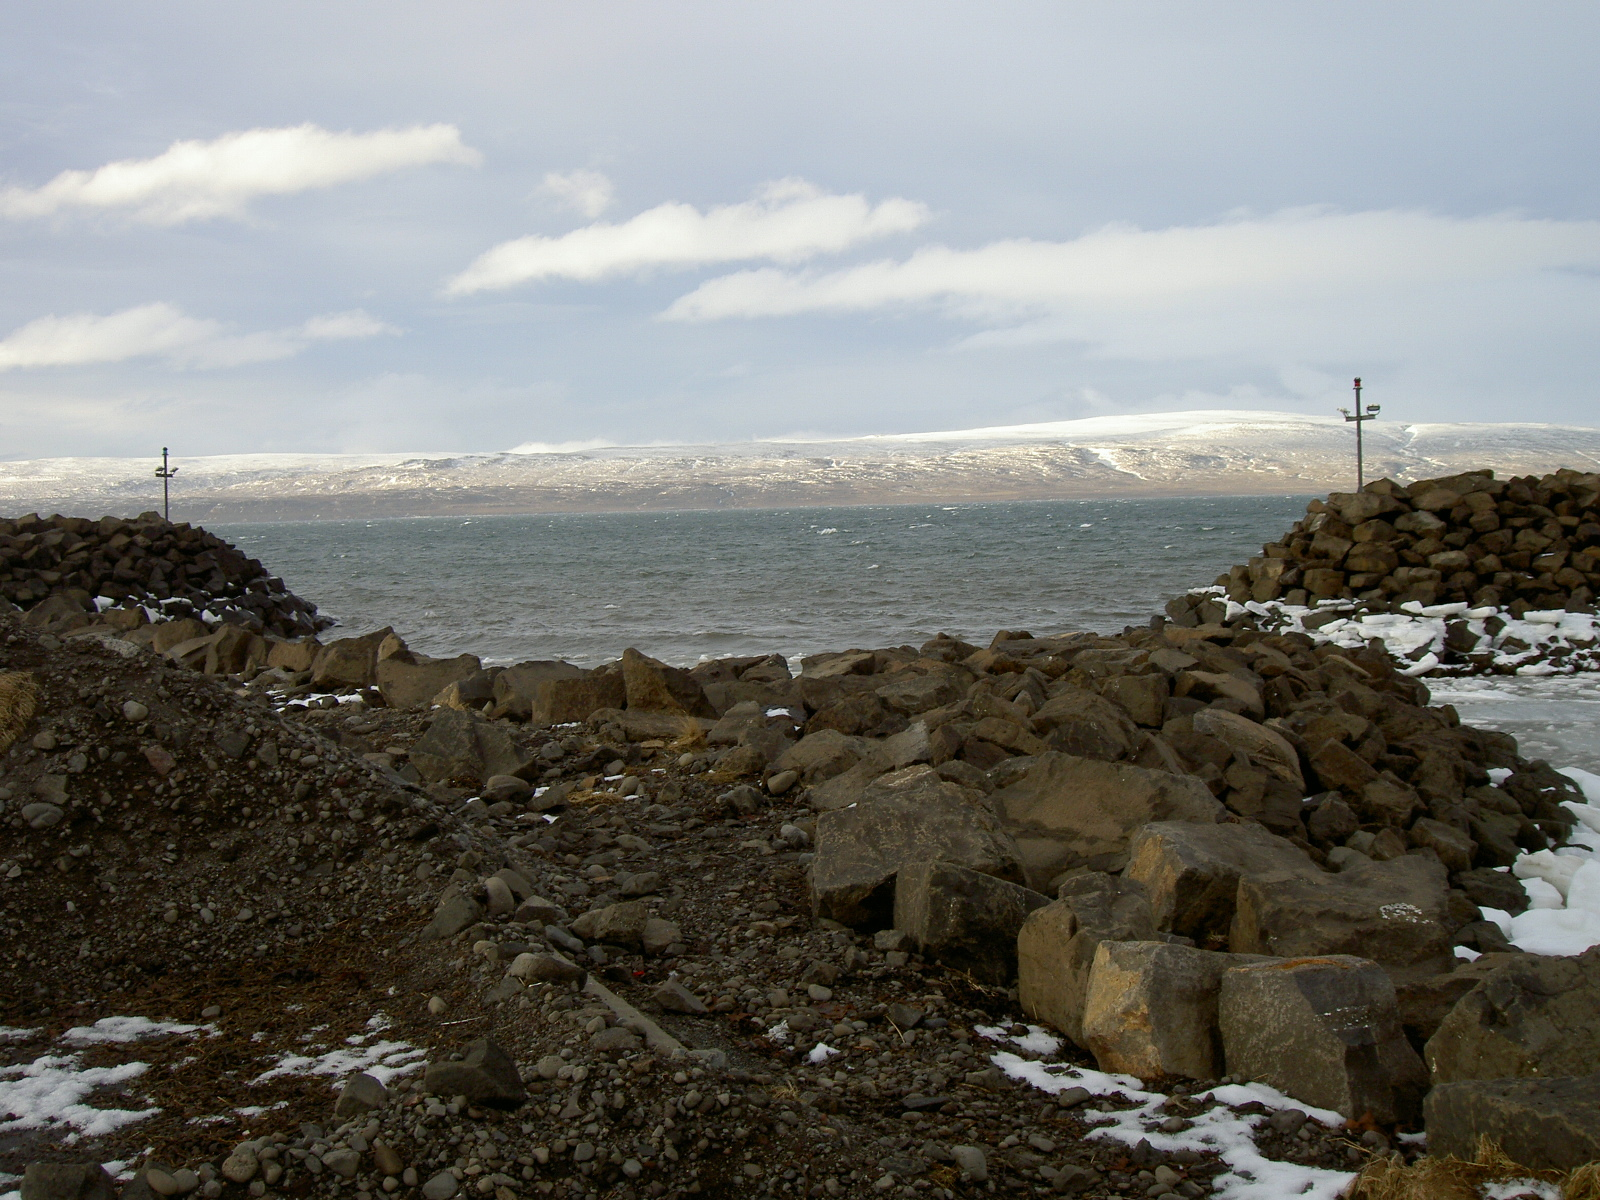 West Iceland (purpose of page is to display an image)